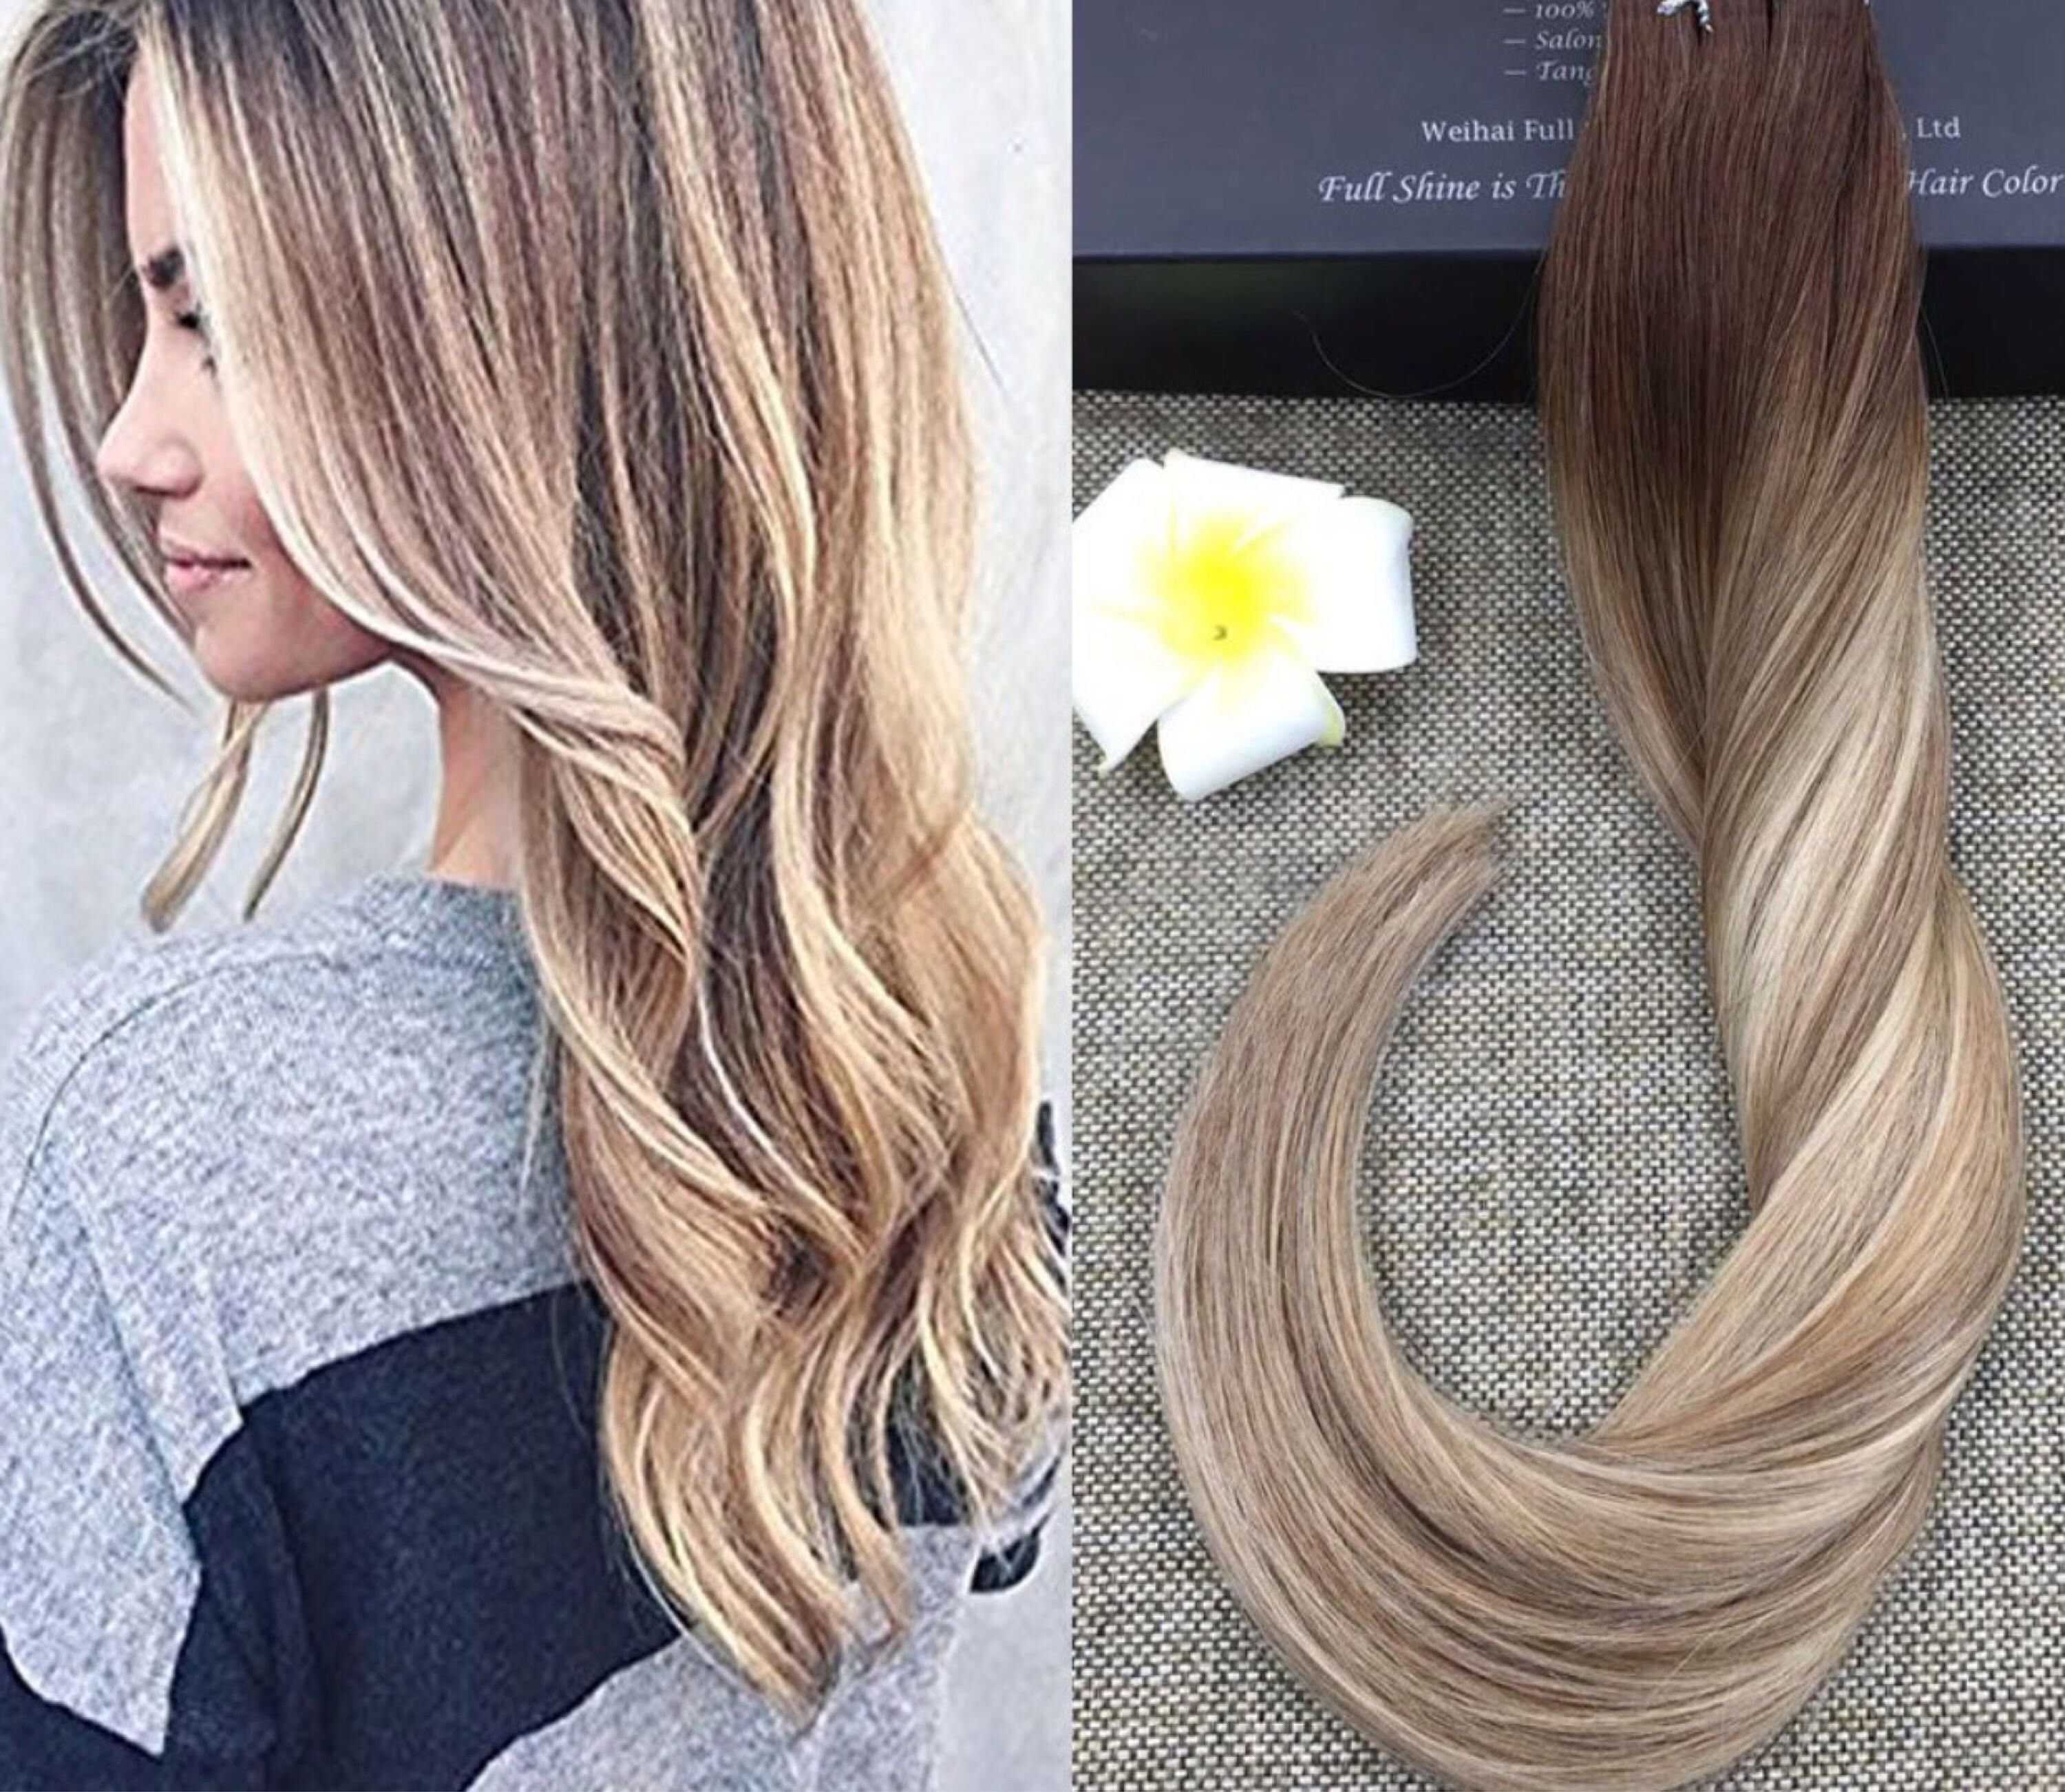 100 human hair 20 extensions clip in or tape in shadow root full shine 18 inch tape in extensions glue on hair extensions dark brown color fading to and blonde highlighted hair pmusecretfo Image collections